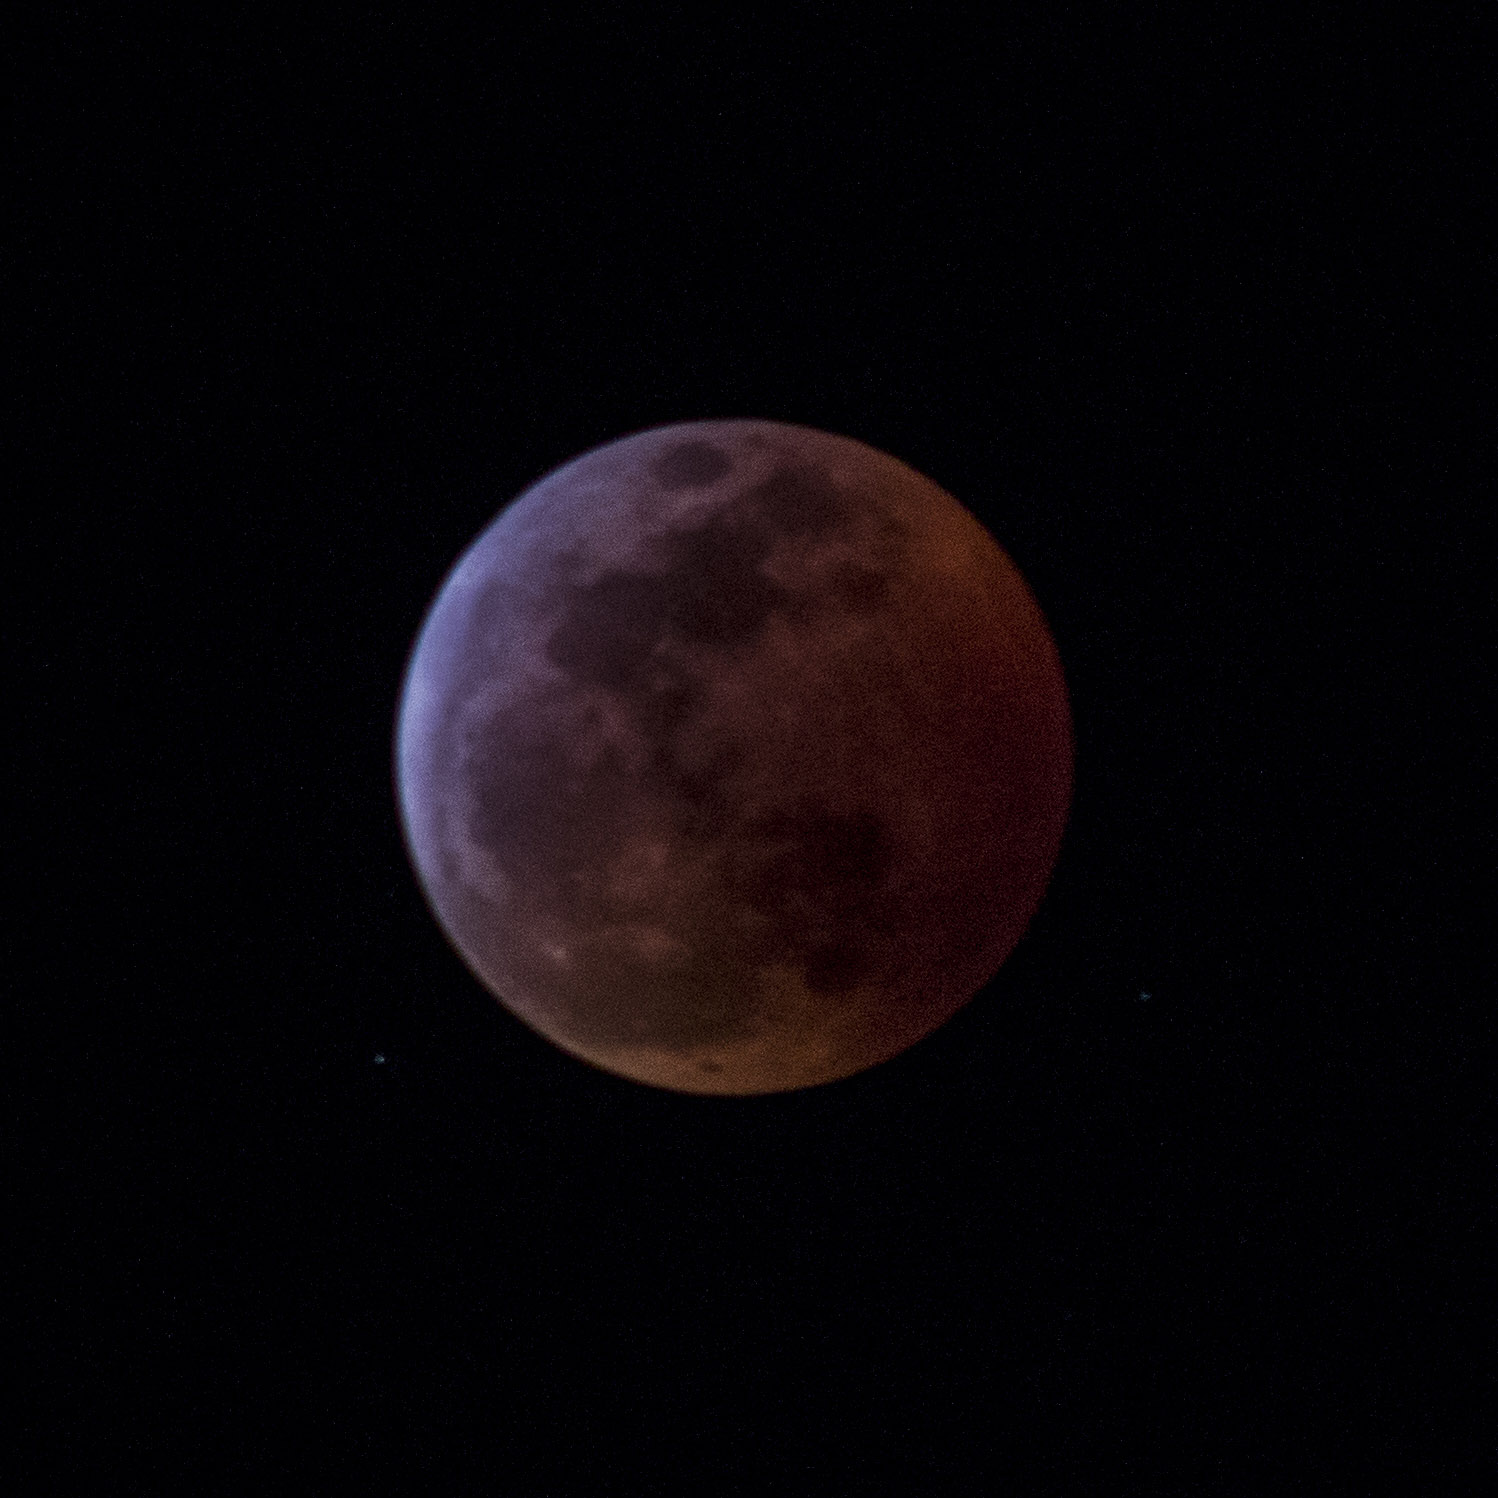 blood moon and the lunar eclipse